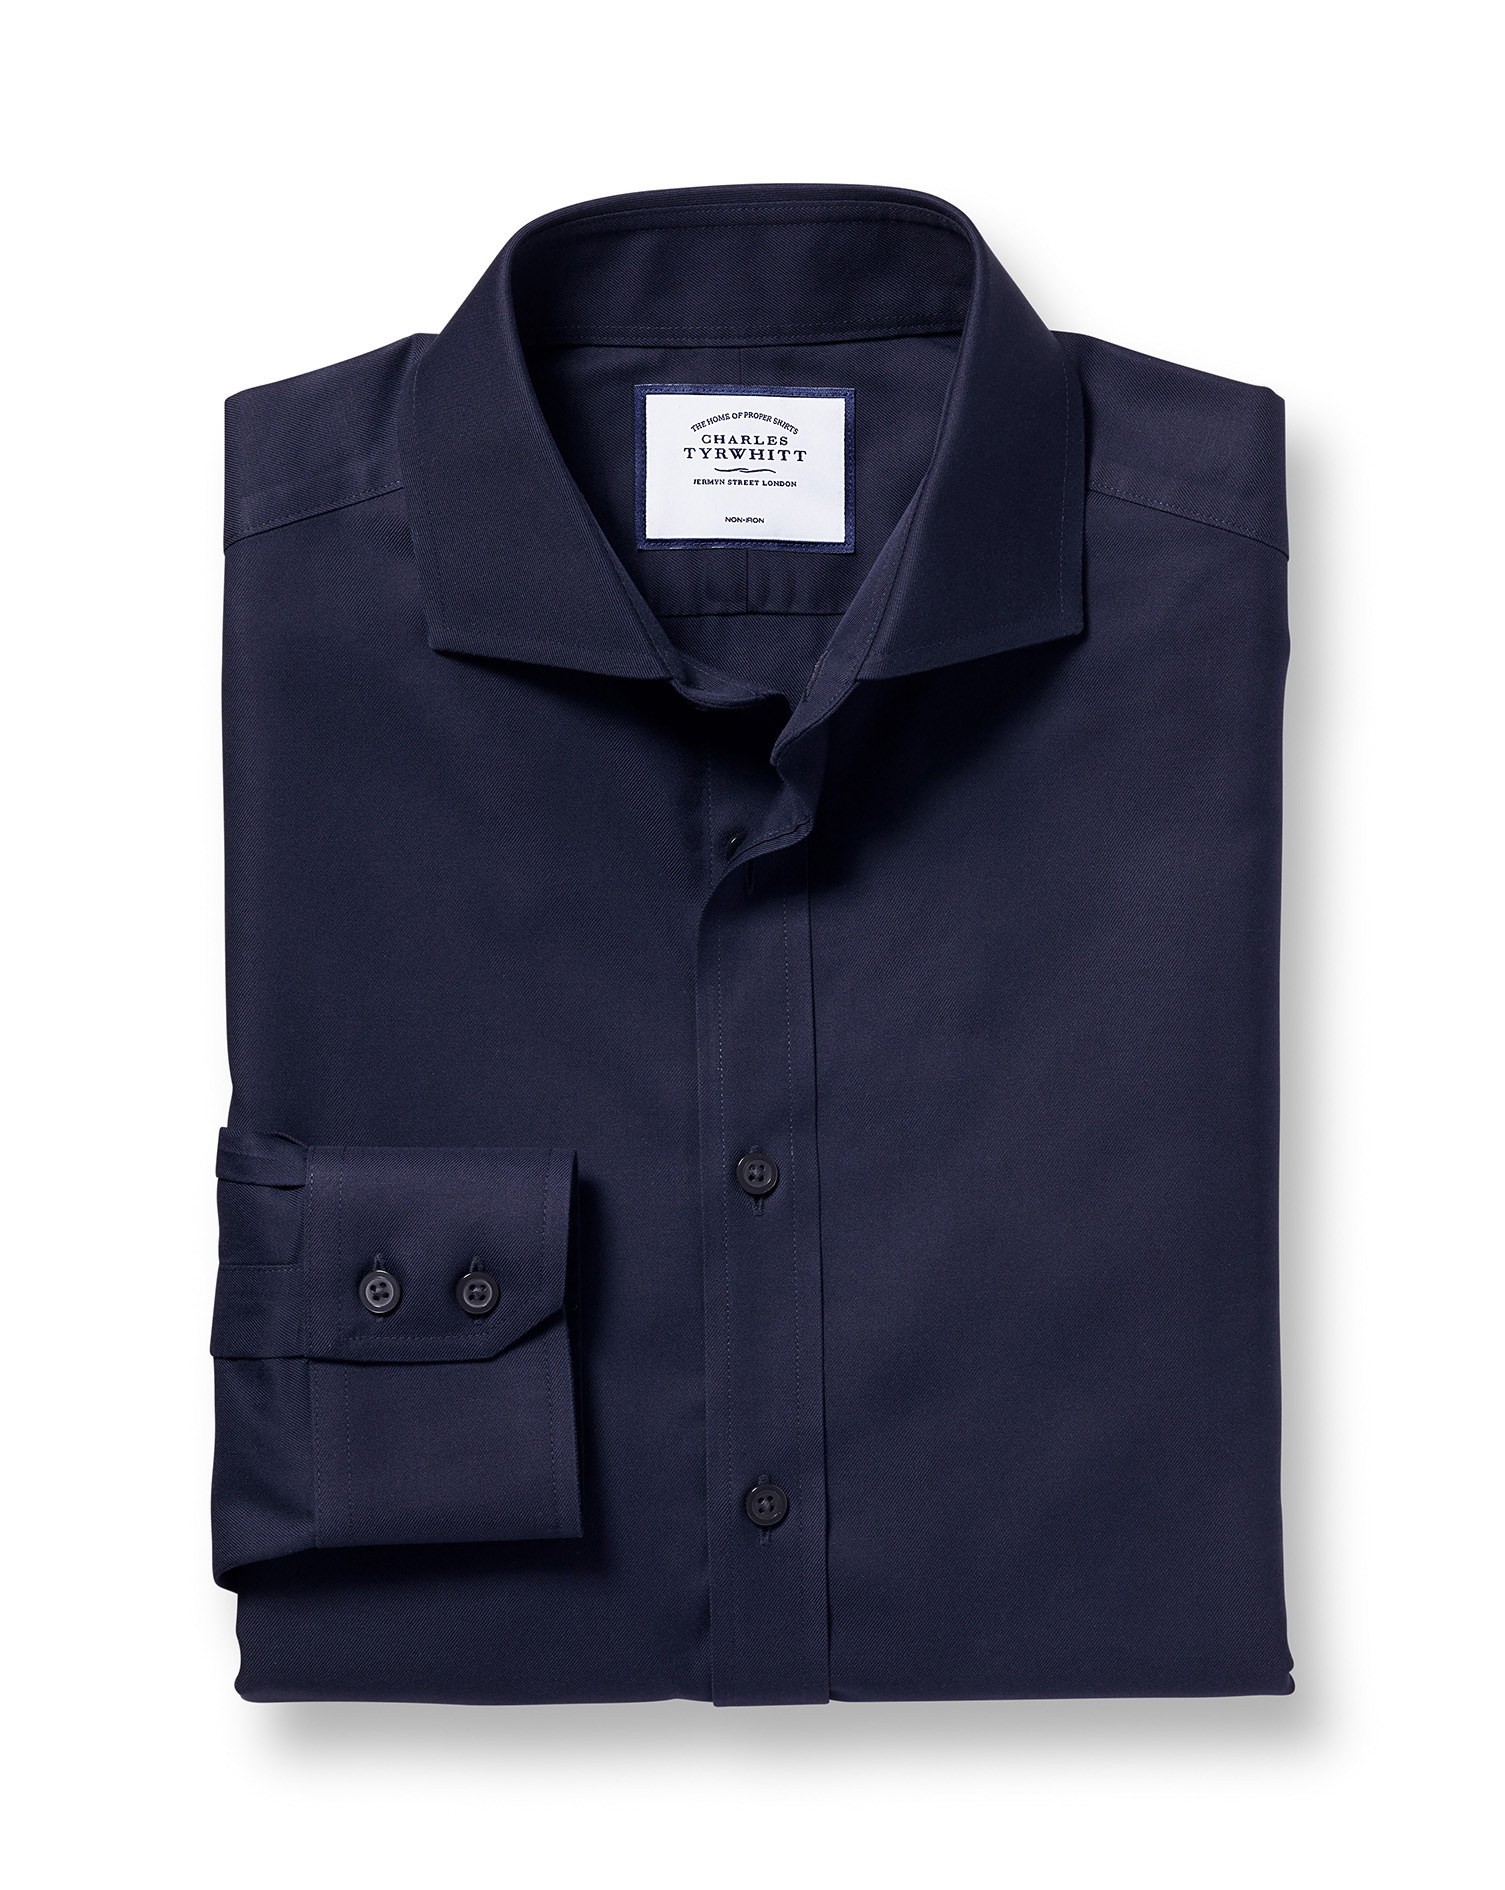 Slim Fit Cutaway Non-Iron Twill Navy Blue Cotton Formal Shirt Single Cuff Size 14.5/32 by Charles Ty